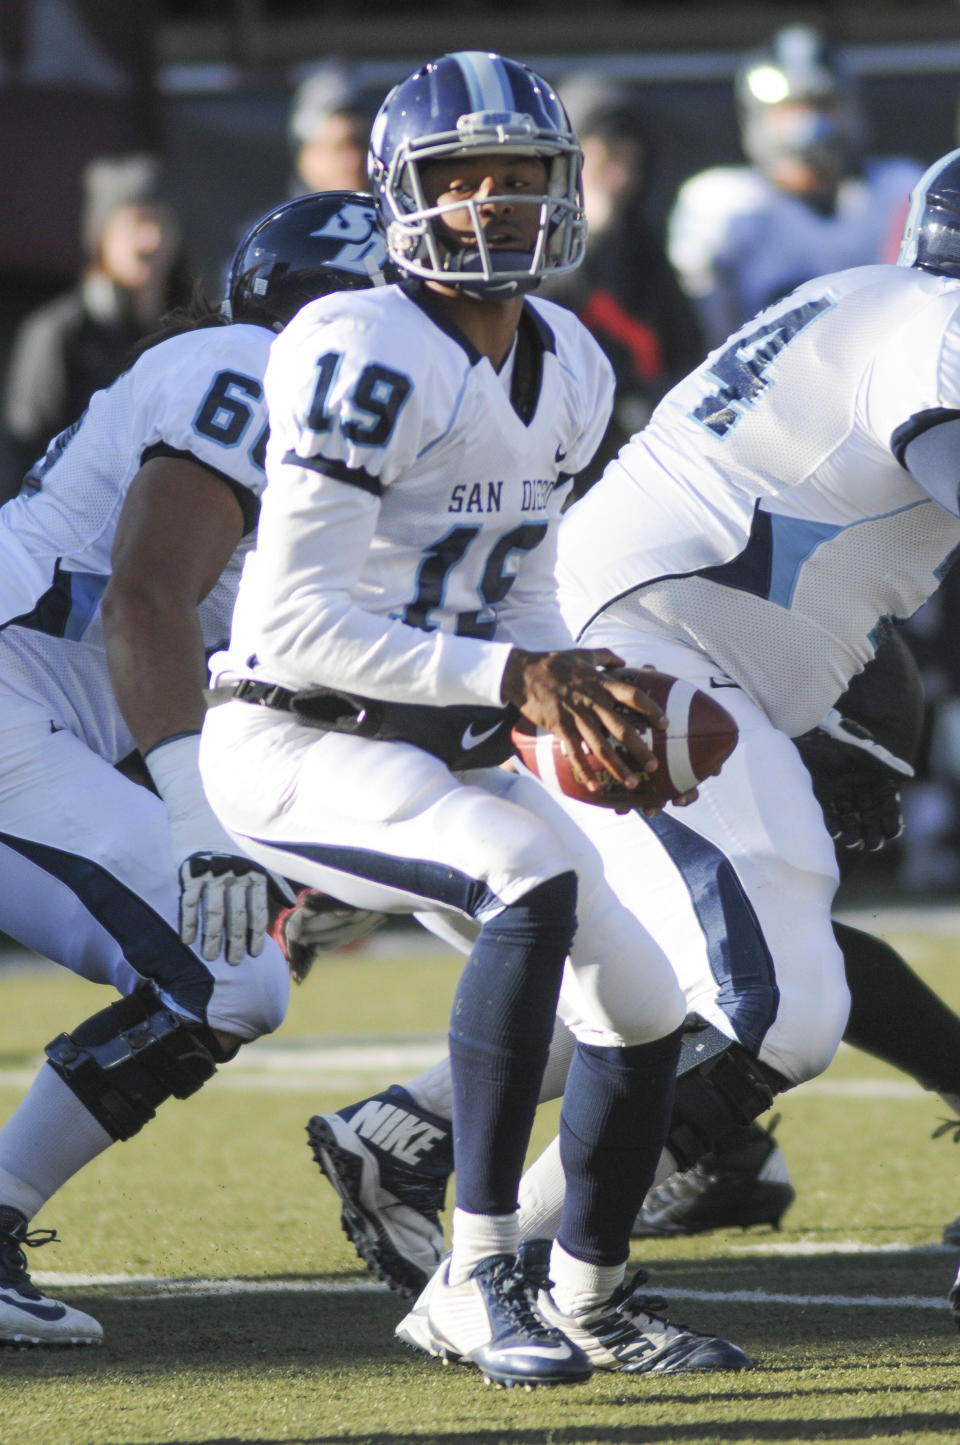 San Diego quarterback Keith Williams (19) turns to hand off the ball during the first half of an NCAA college football playoff game against Montana, Saturday, Nov. 29, 2014, in Missoula, Mont. (AP Photo/Lido Vizzutti)